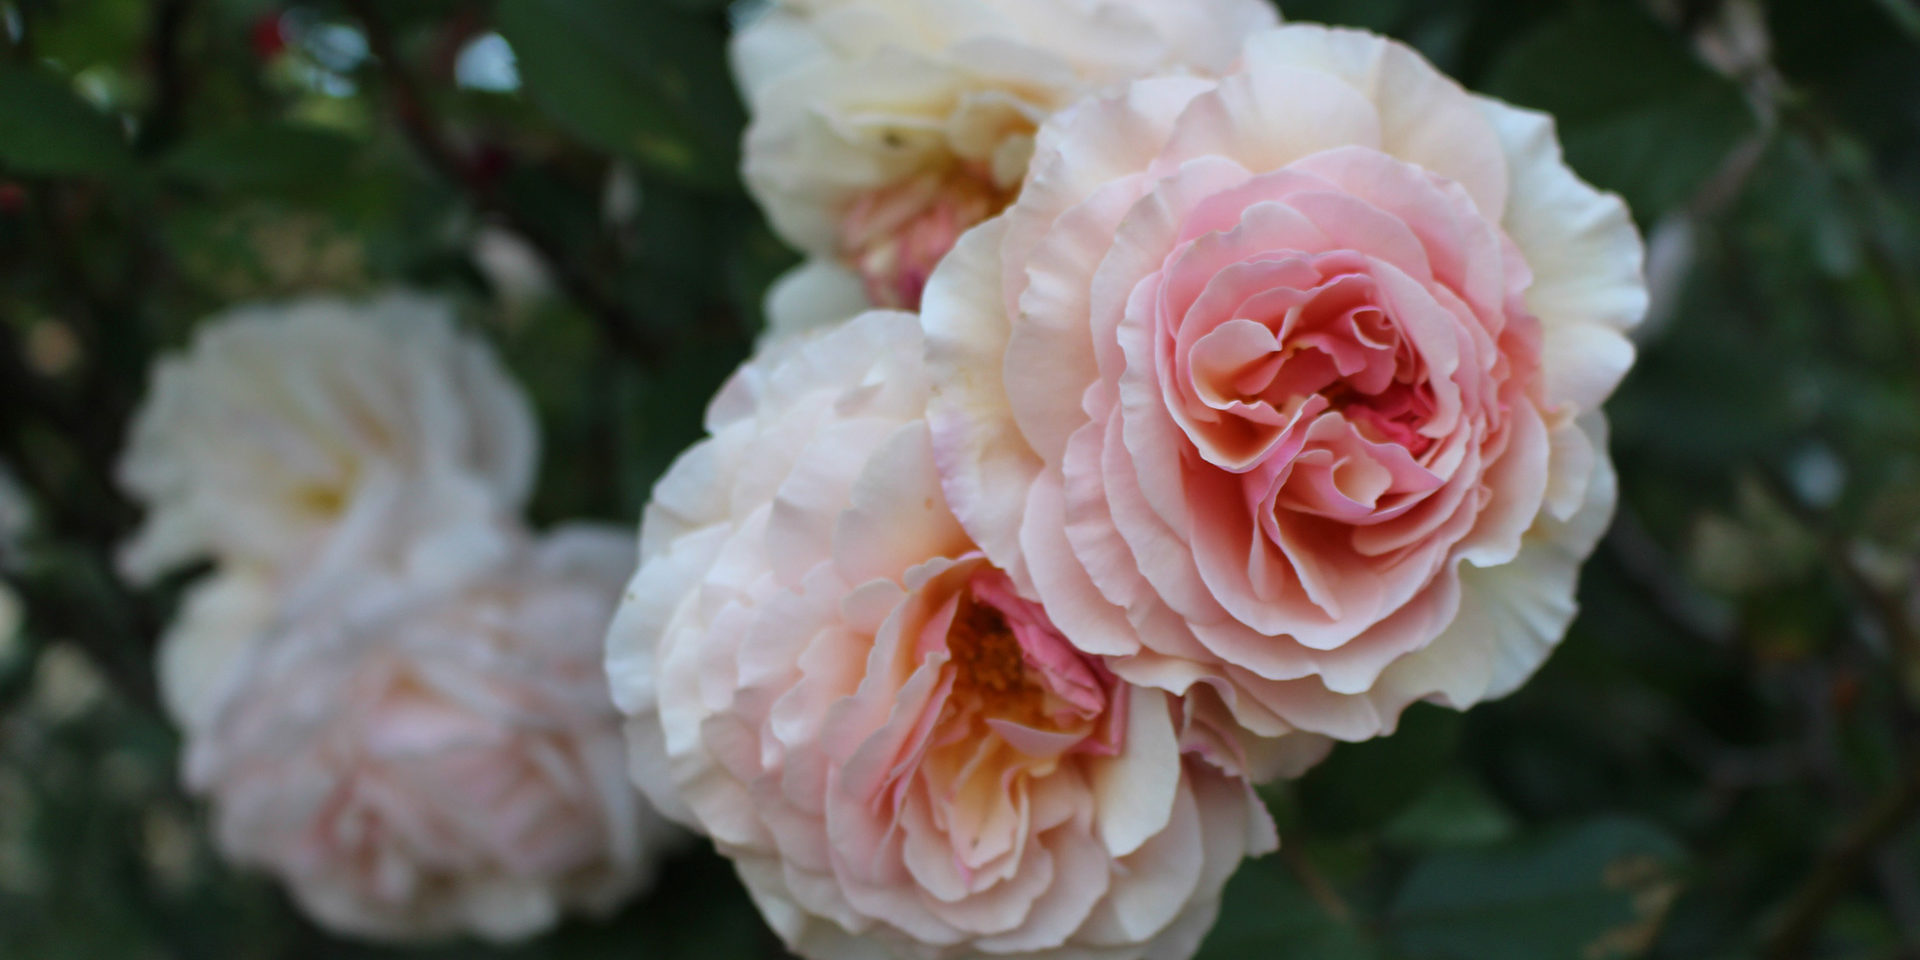 pink-and-white-rose-flowers-during-daytime